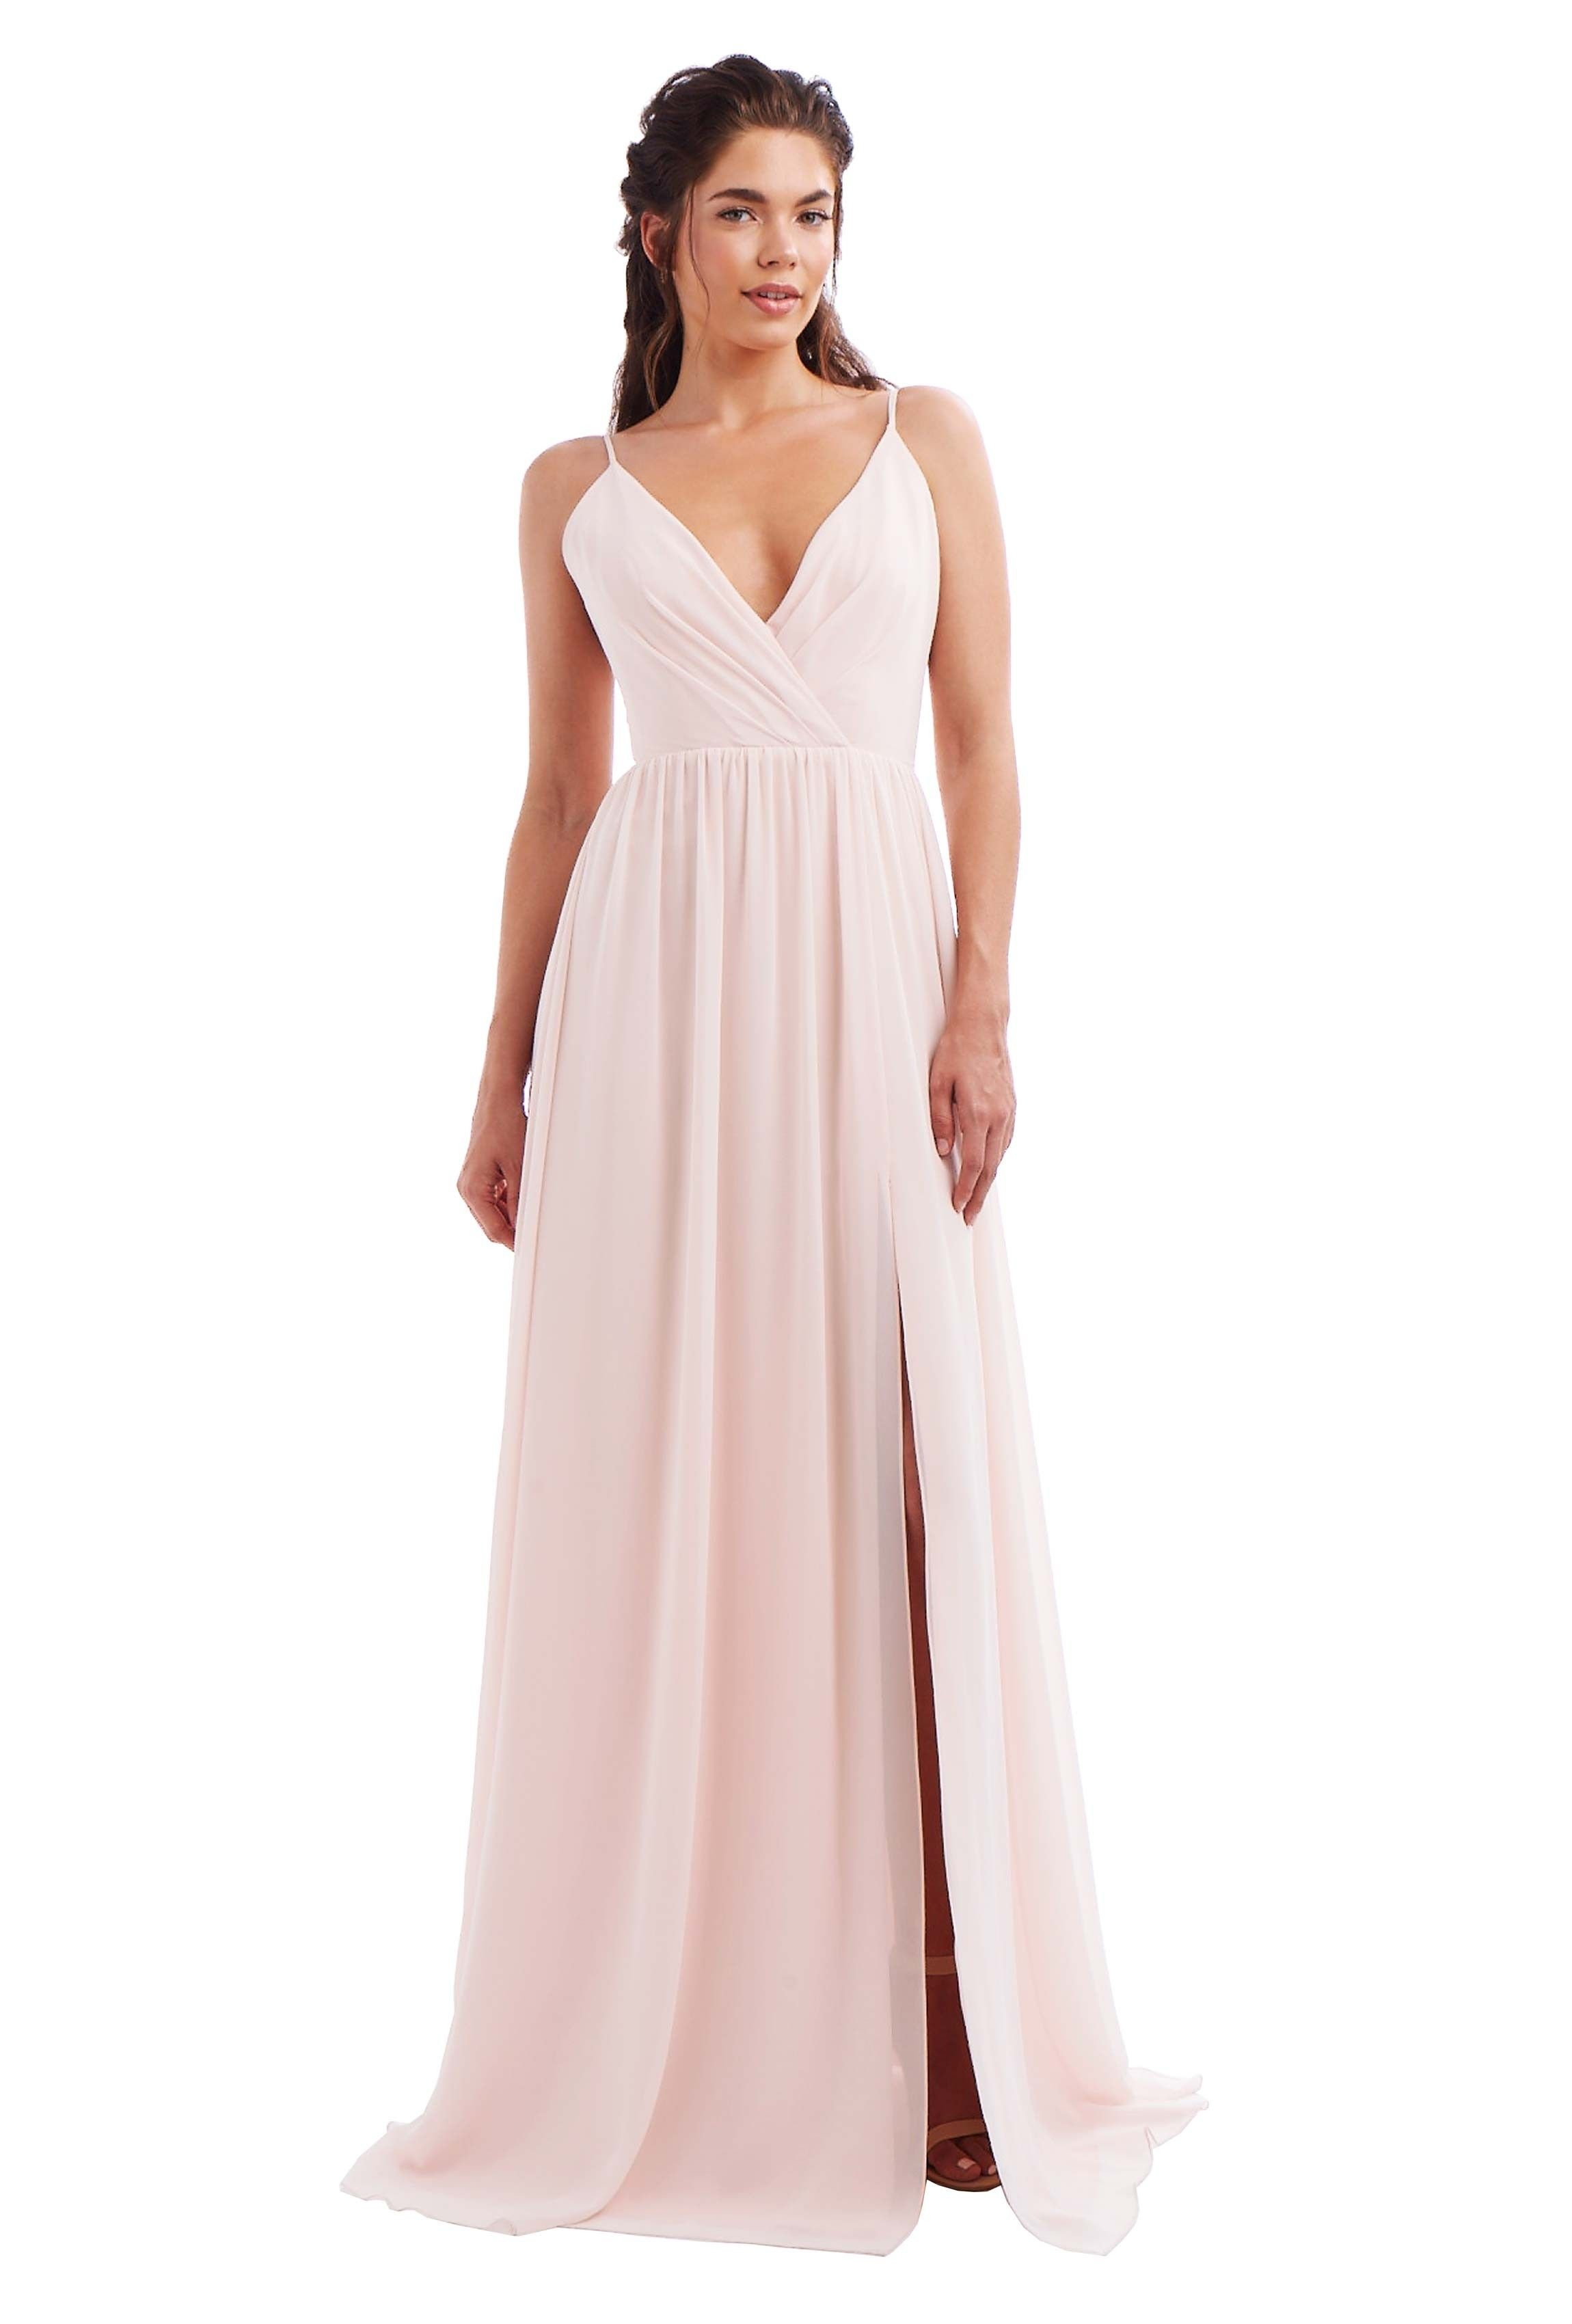 A Floor Length V Neck Chiffon Bridesmaid Dress With Cutout In Eight Colors Affordable Designer Dresses To Or At Vow Be Chic